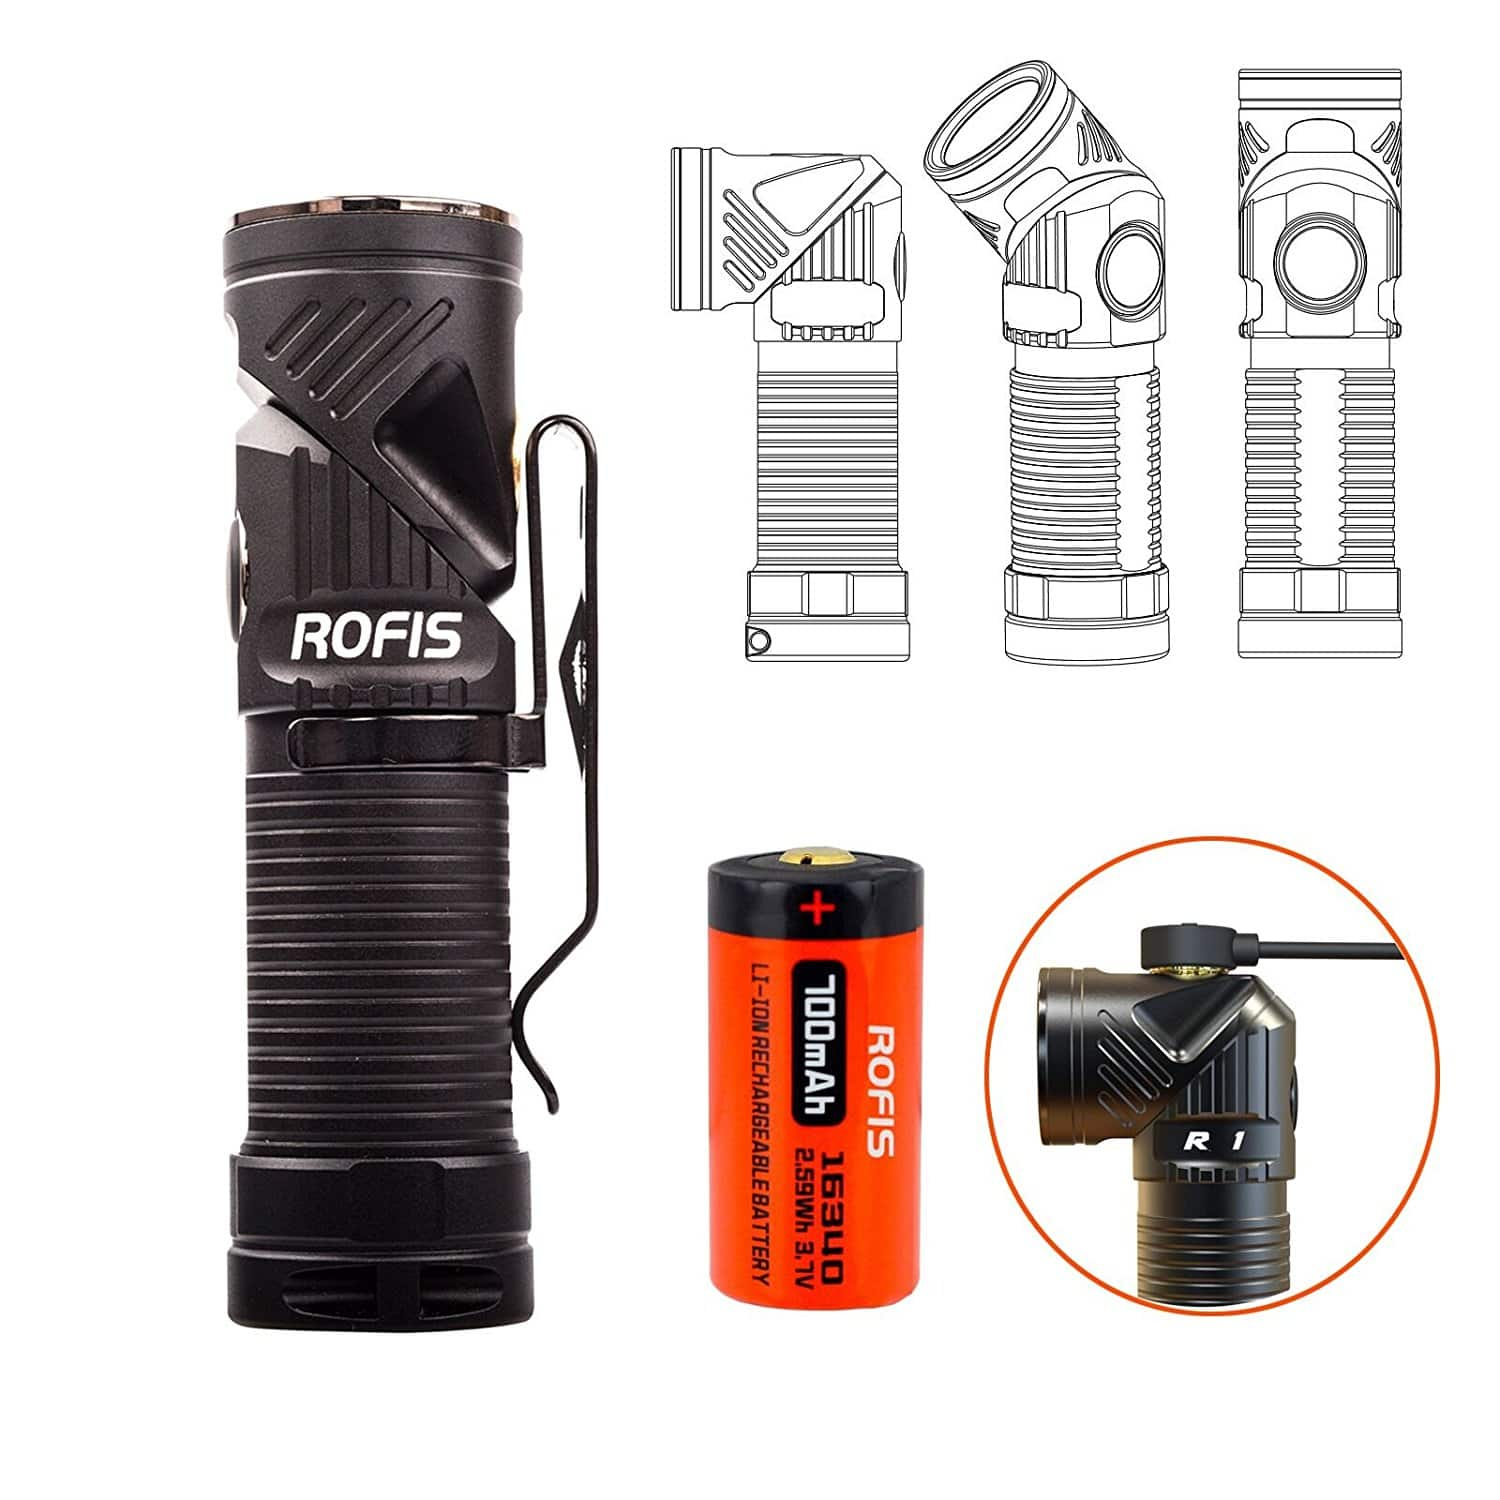 Rofis R1 CREE LED 900 Lumens LED Flashlight - USB Rechargeable Adjustable-head Ultra Compact Lightweight EDC (Free Prime Shipping) $45.5